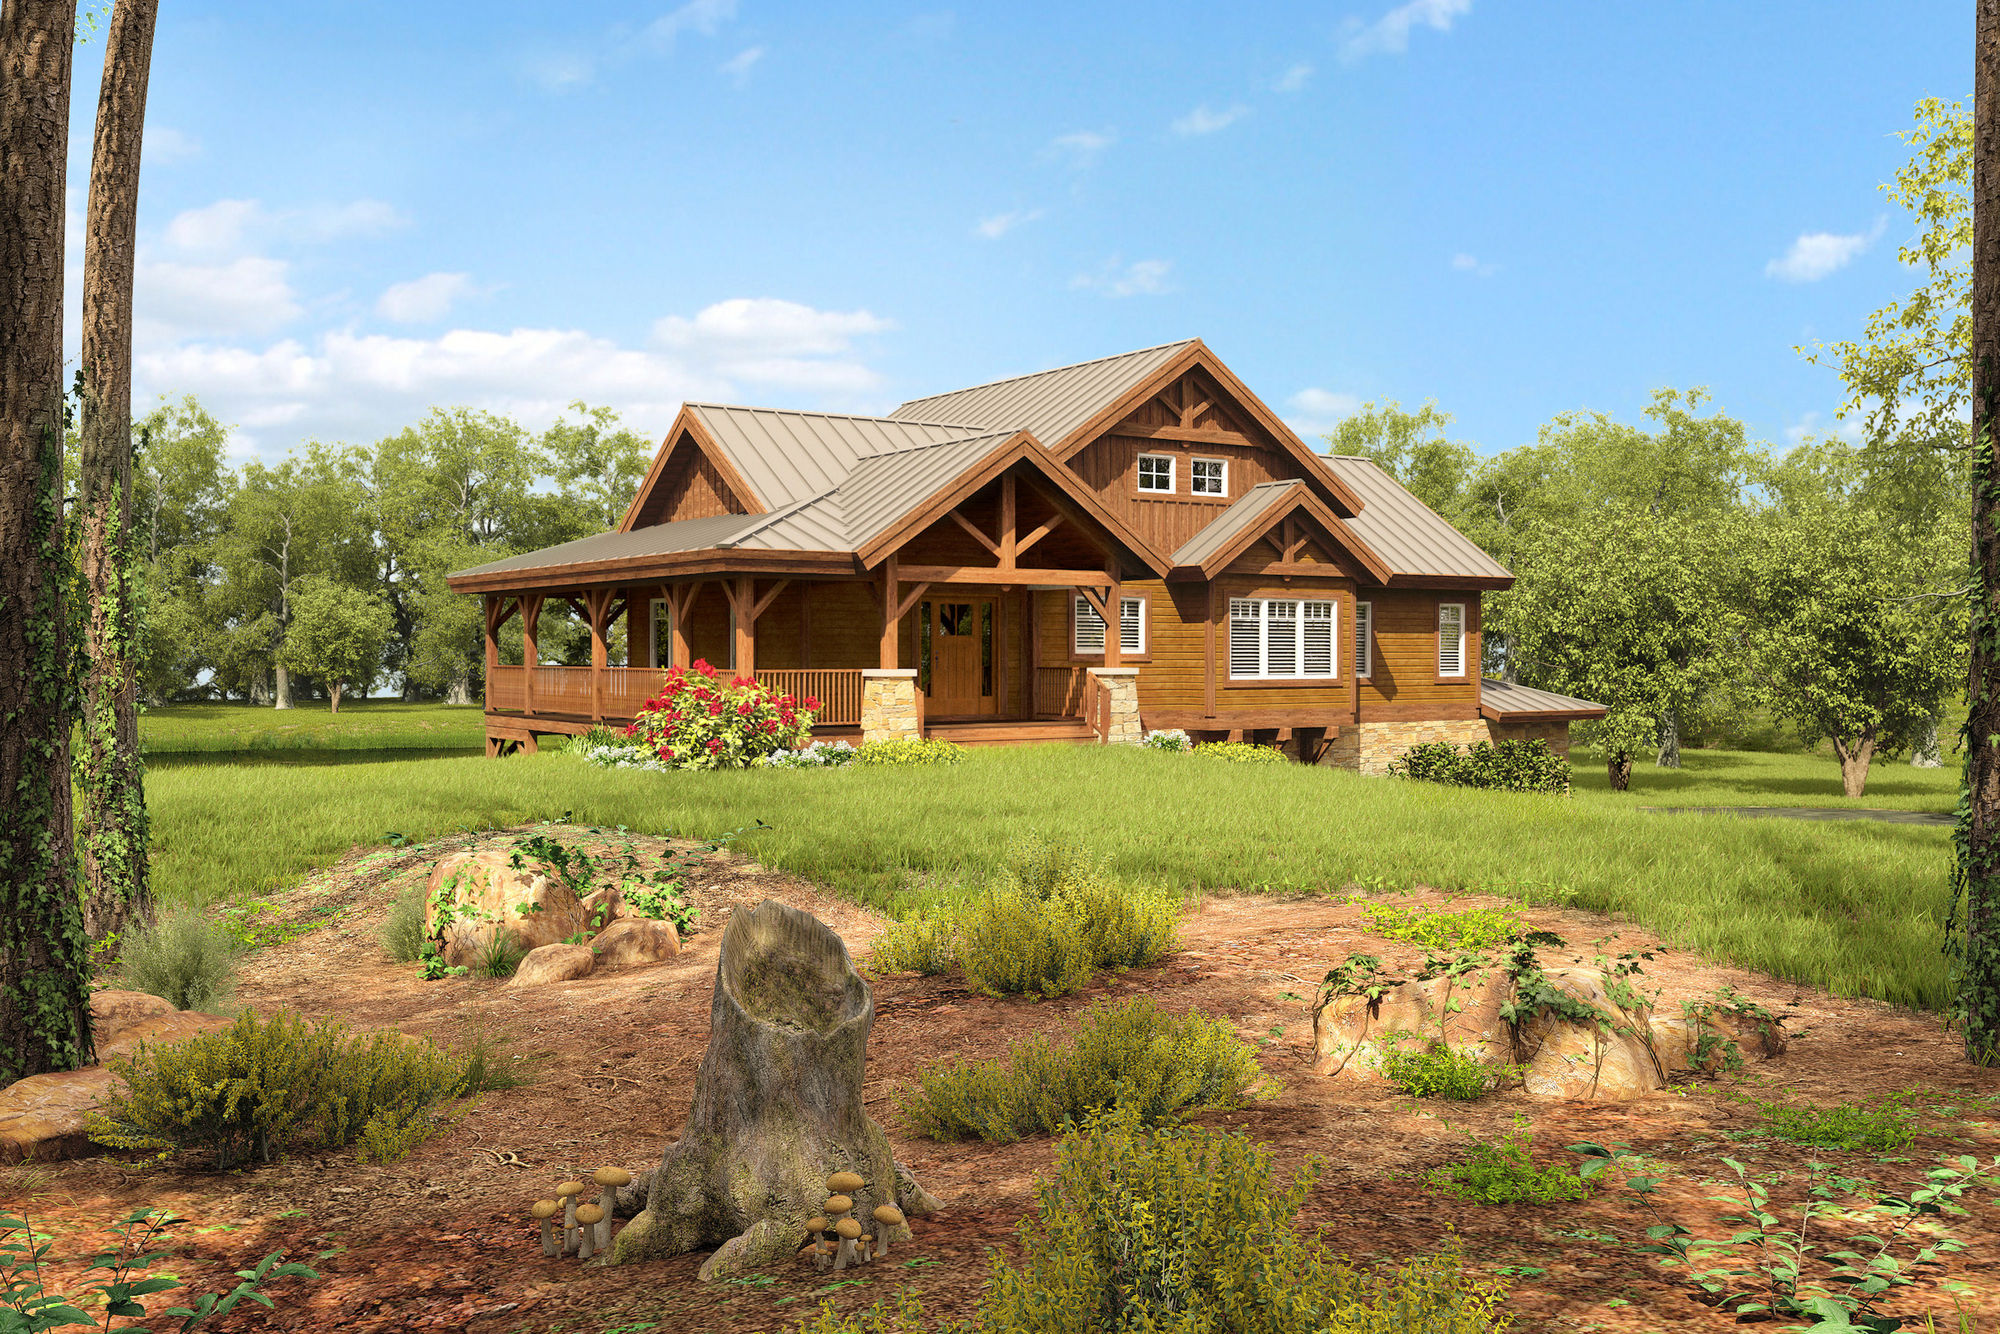 Wooden Large Country House Design on large cottage house, large a frame house, large homes, large courtyard, large family house, large medieval house, large luxury villa, large chicken houses, large swimming pool, large forest house, realistic house, large studio, large traditional house, large apartment, large farm, large stone house, large site, large chateau, ranch house,